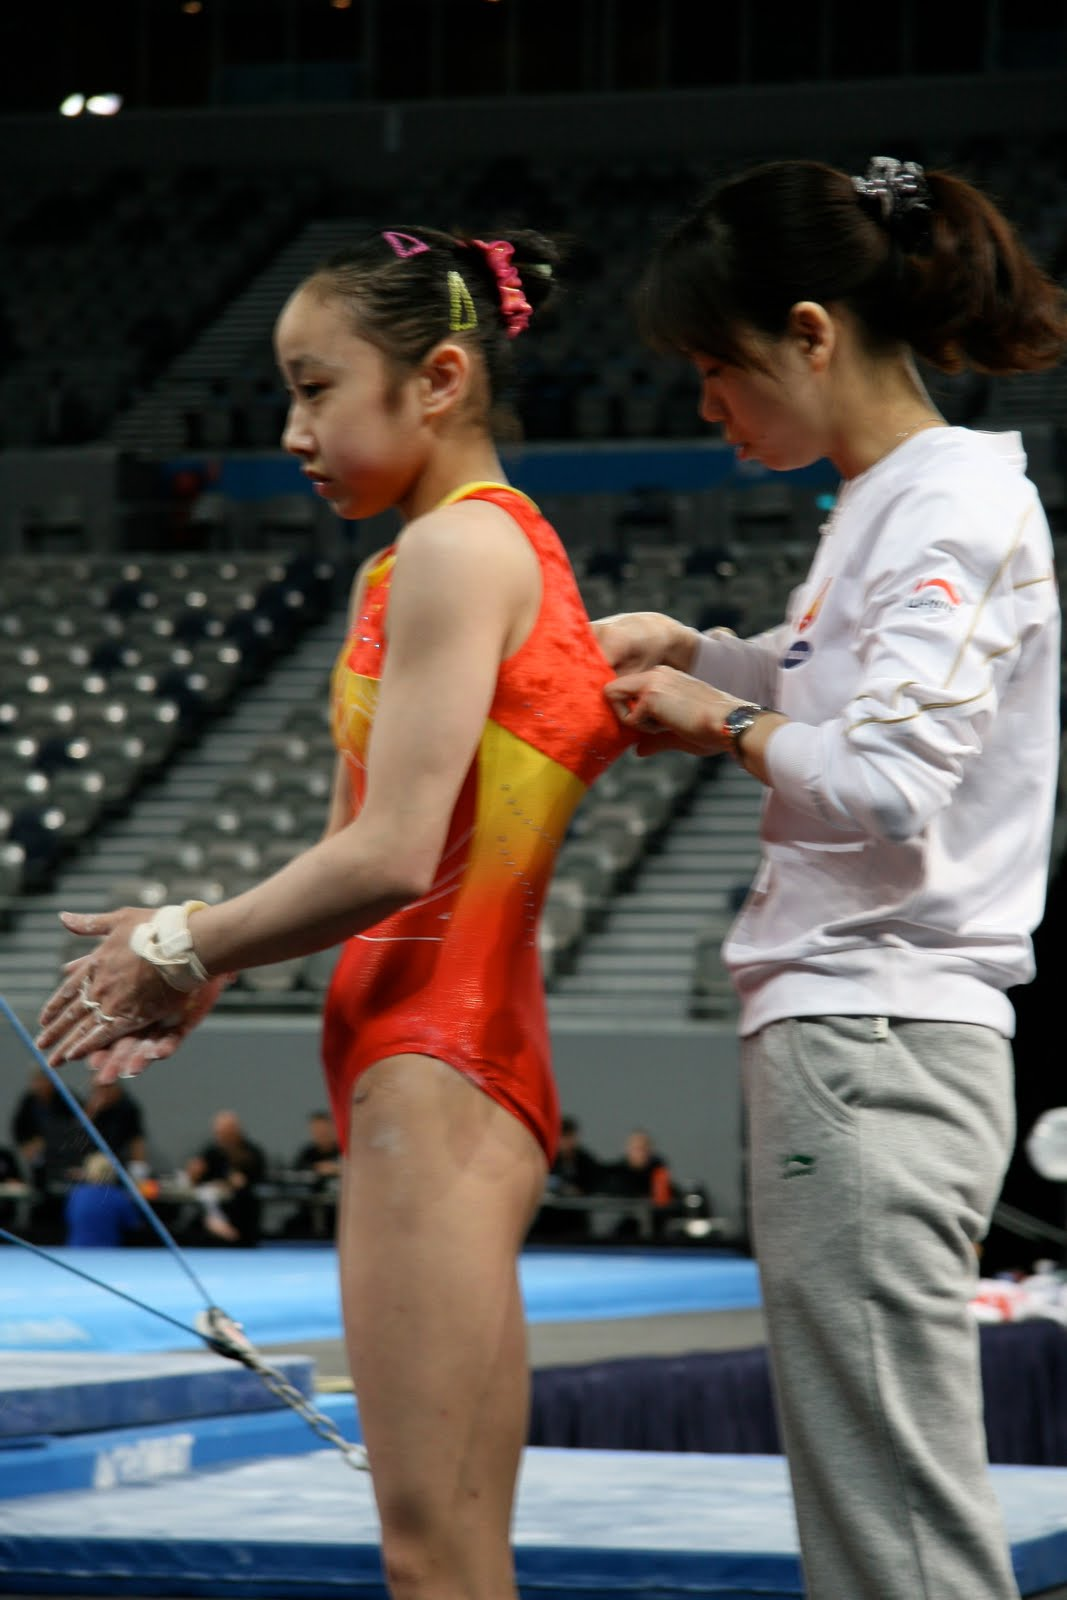 Is it just me, or are the Chinese always having wardrobe malfunctions?